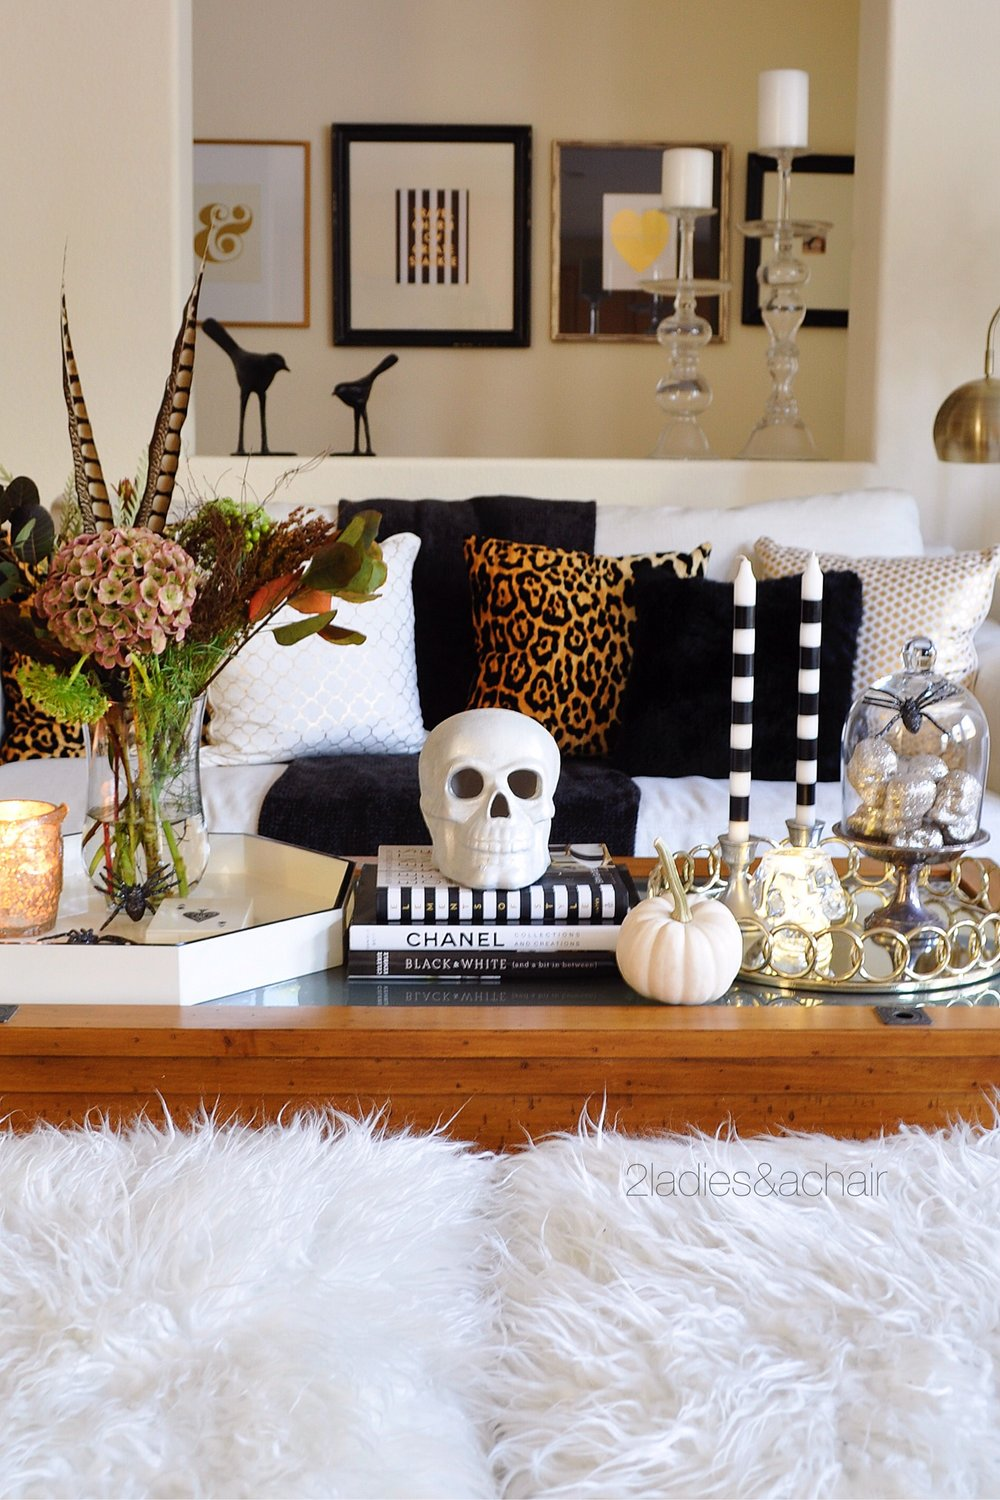 Styling A Coffee Table Halloween 2 Ladies A Chair